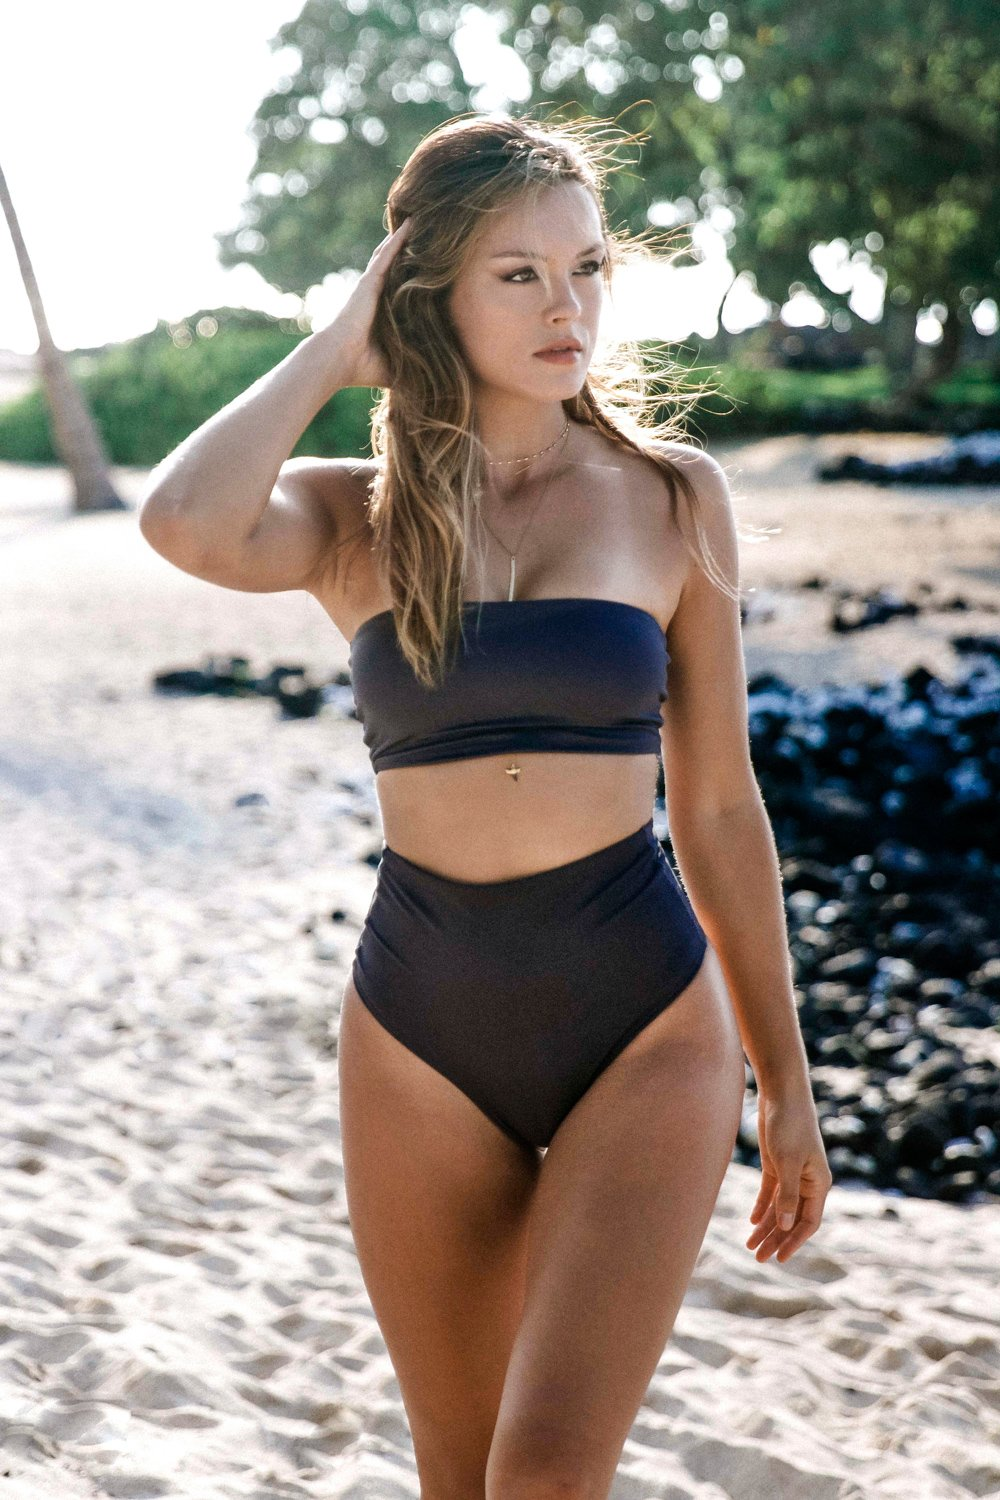 Monaco Top | Jet Set - Wave Babe Swimwear Charcoal Dark Grey Minimal Bandeau Top Simple Cute Best Swimwear 2019 Sexy Sporty Classic